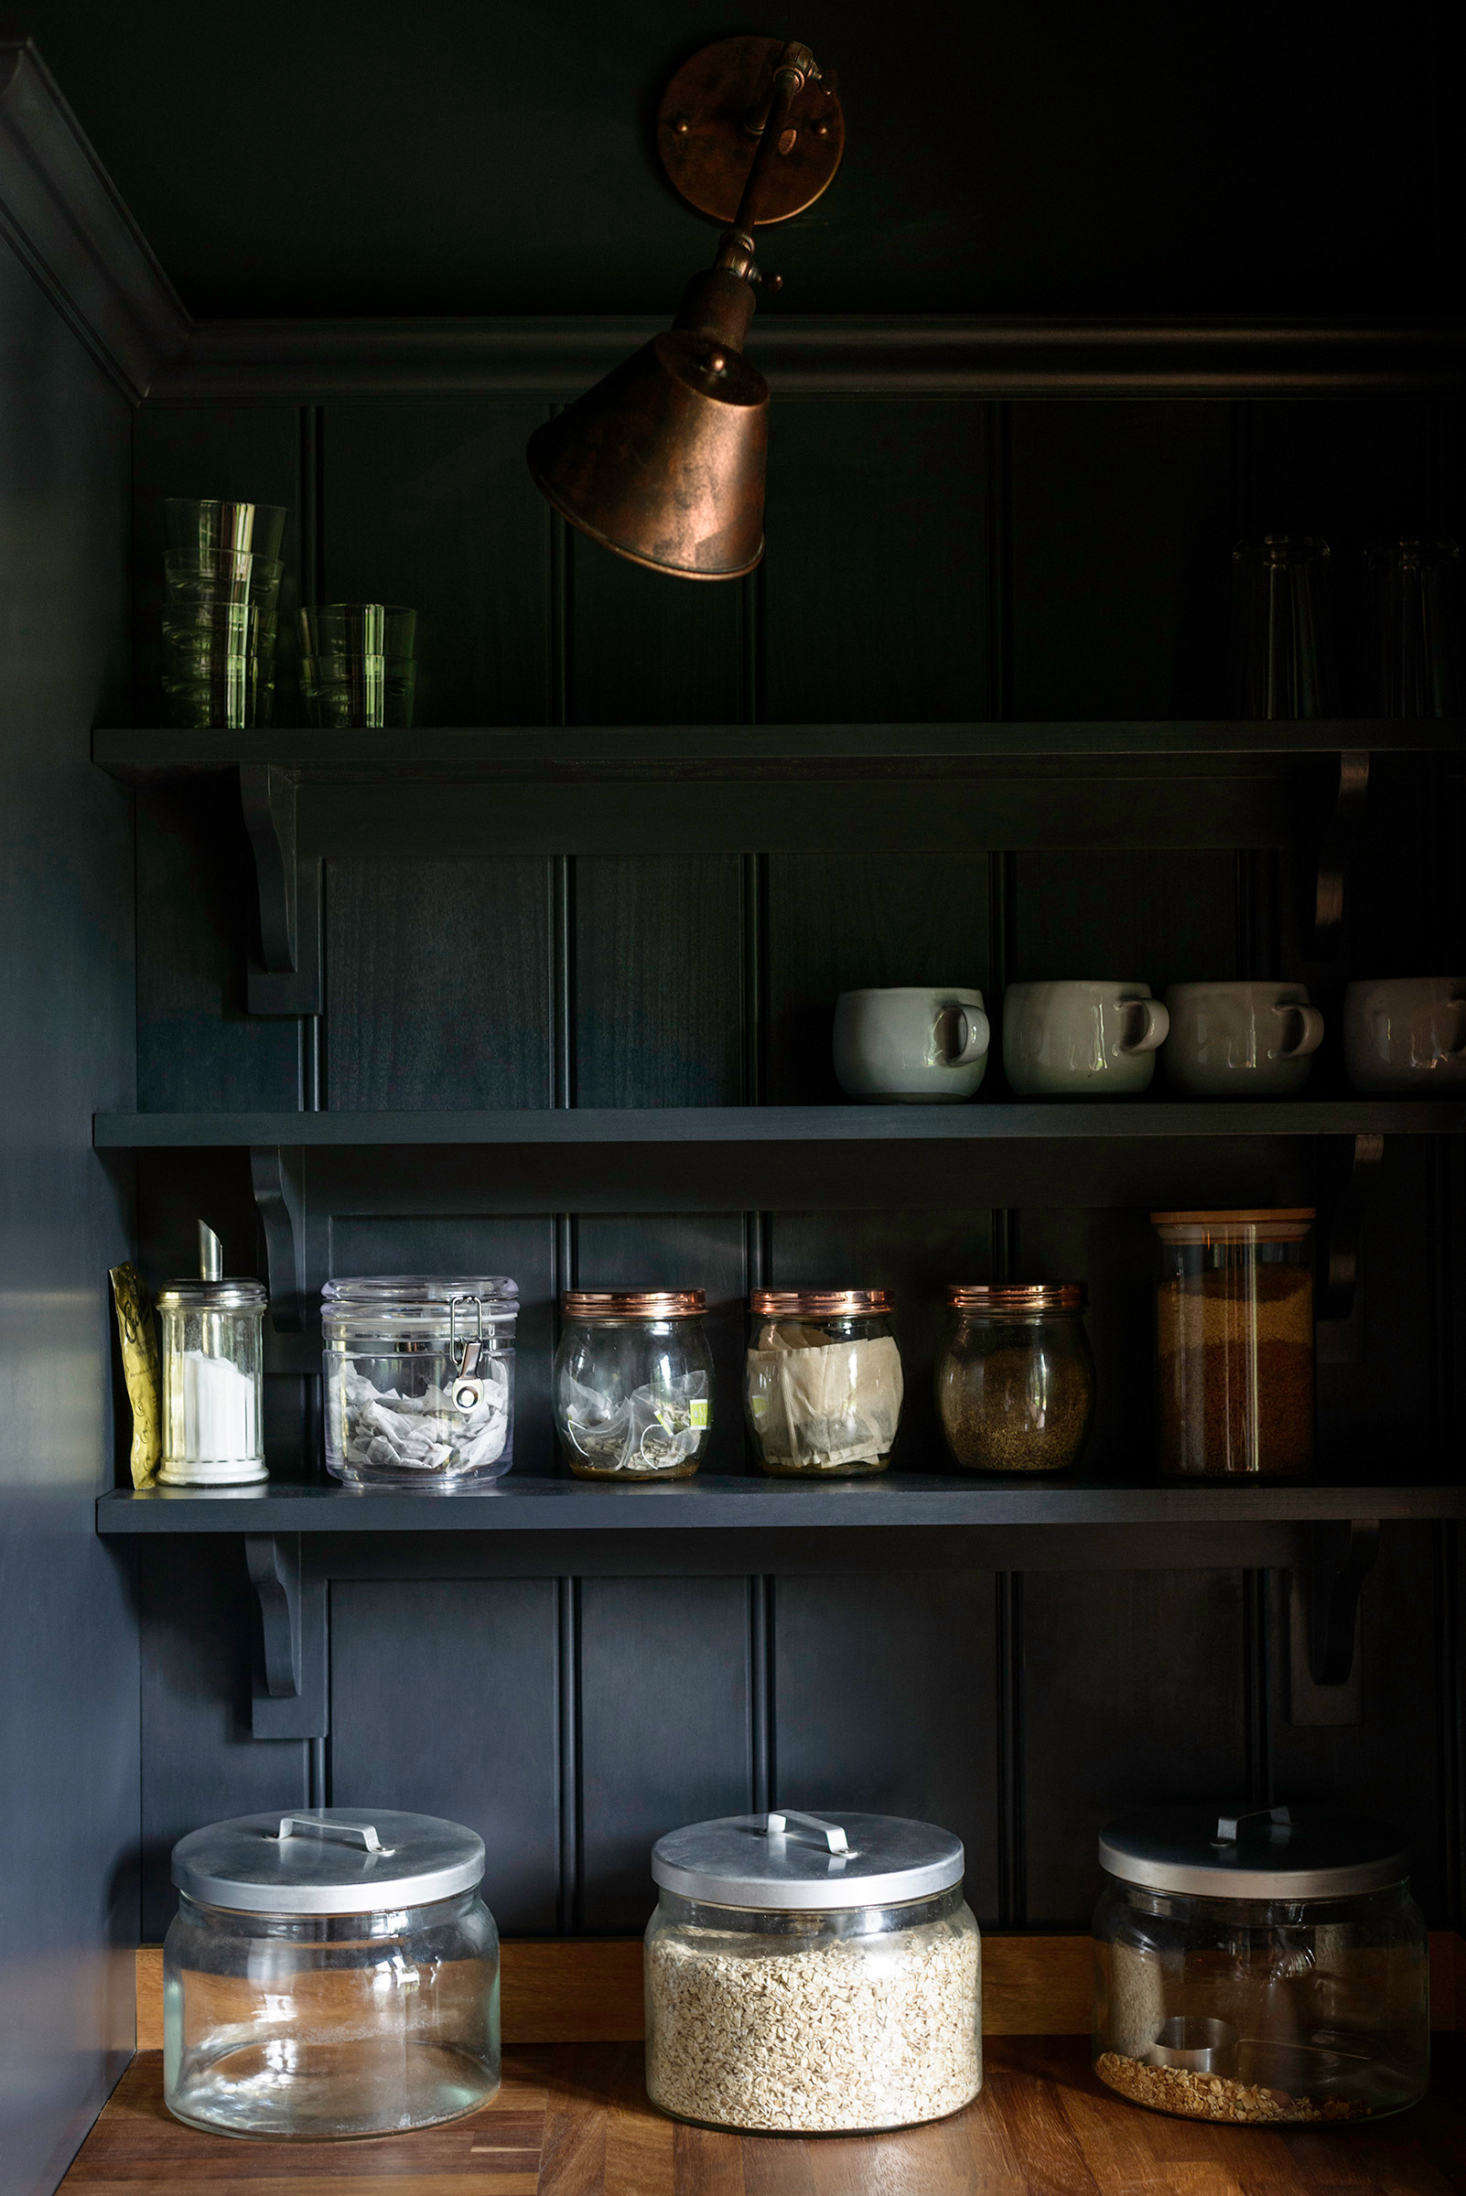 Simple jars filled with breakfast essentials occupy a small open-shelving corner pantry. A single industrial copper sconce hangs above.